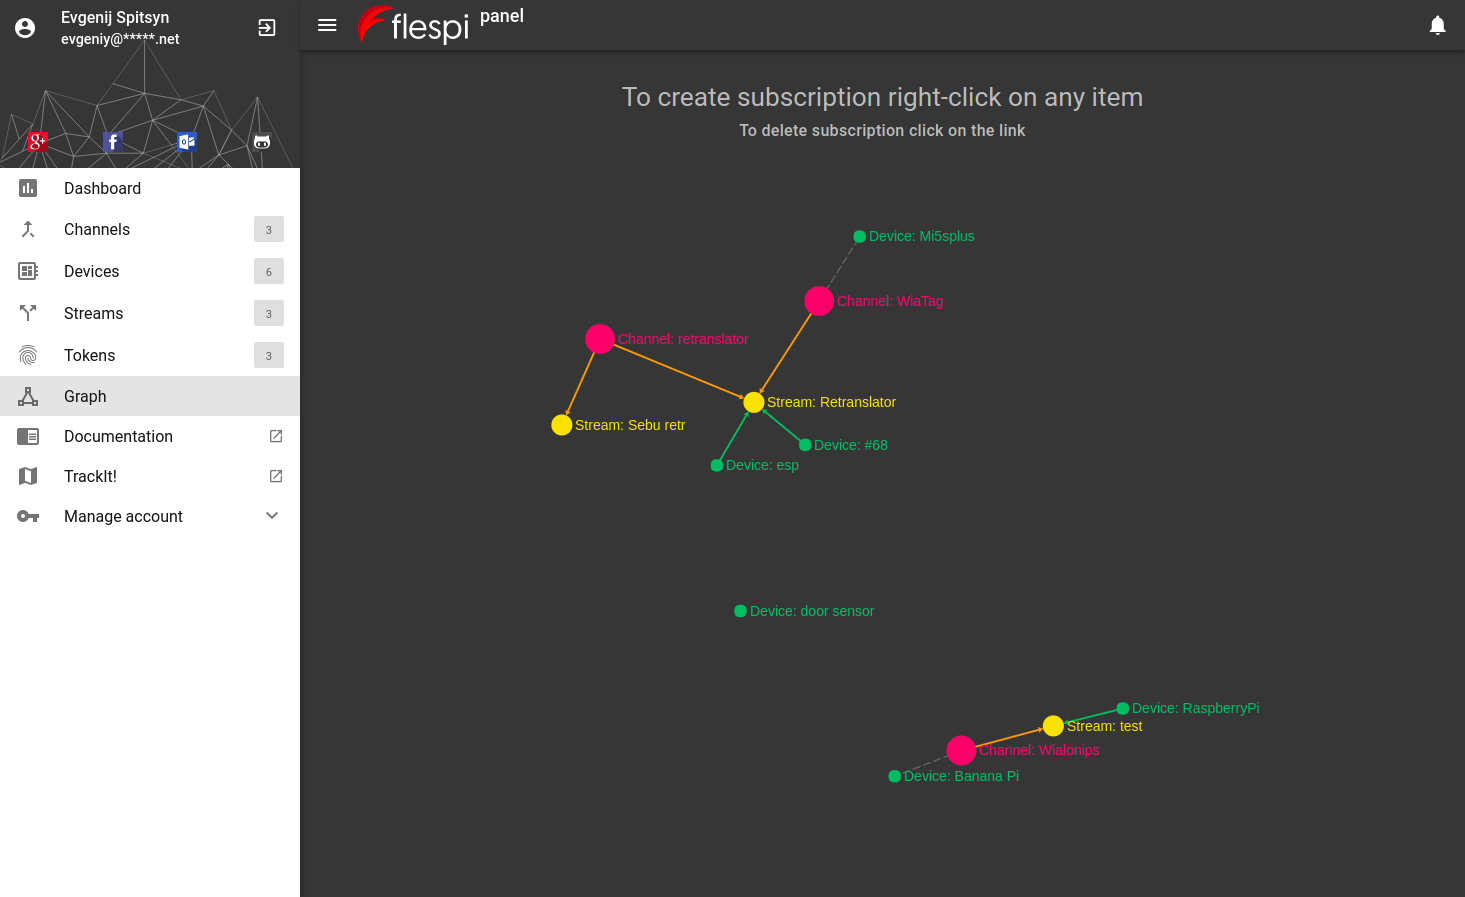 flespi registry streams graph subscription